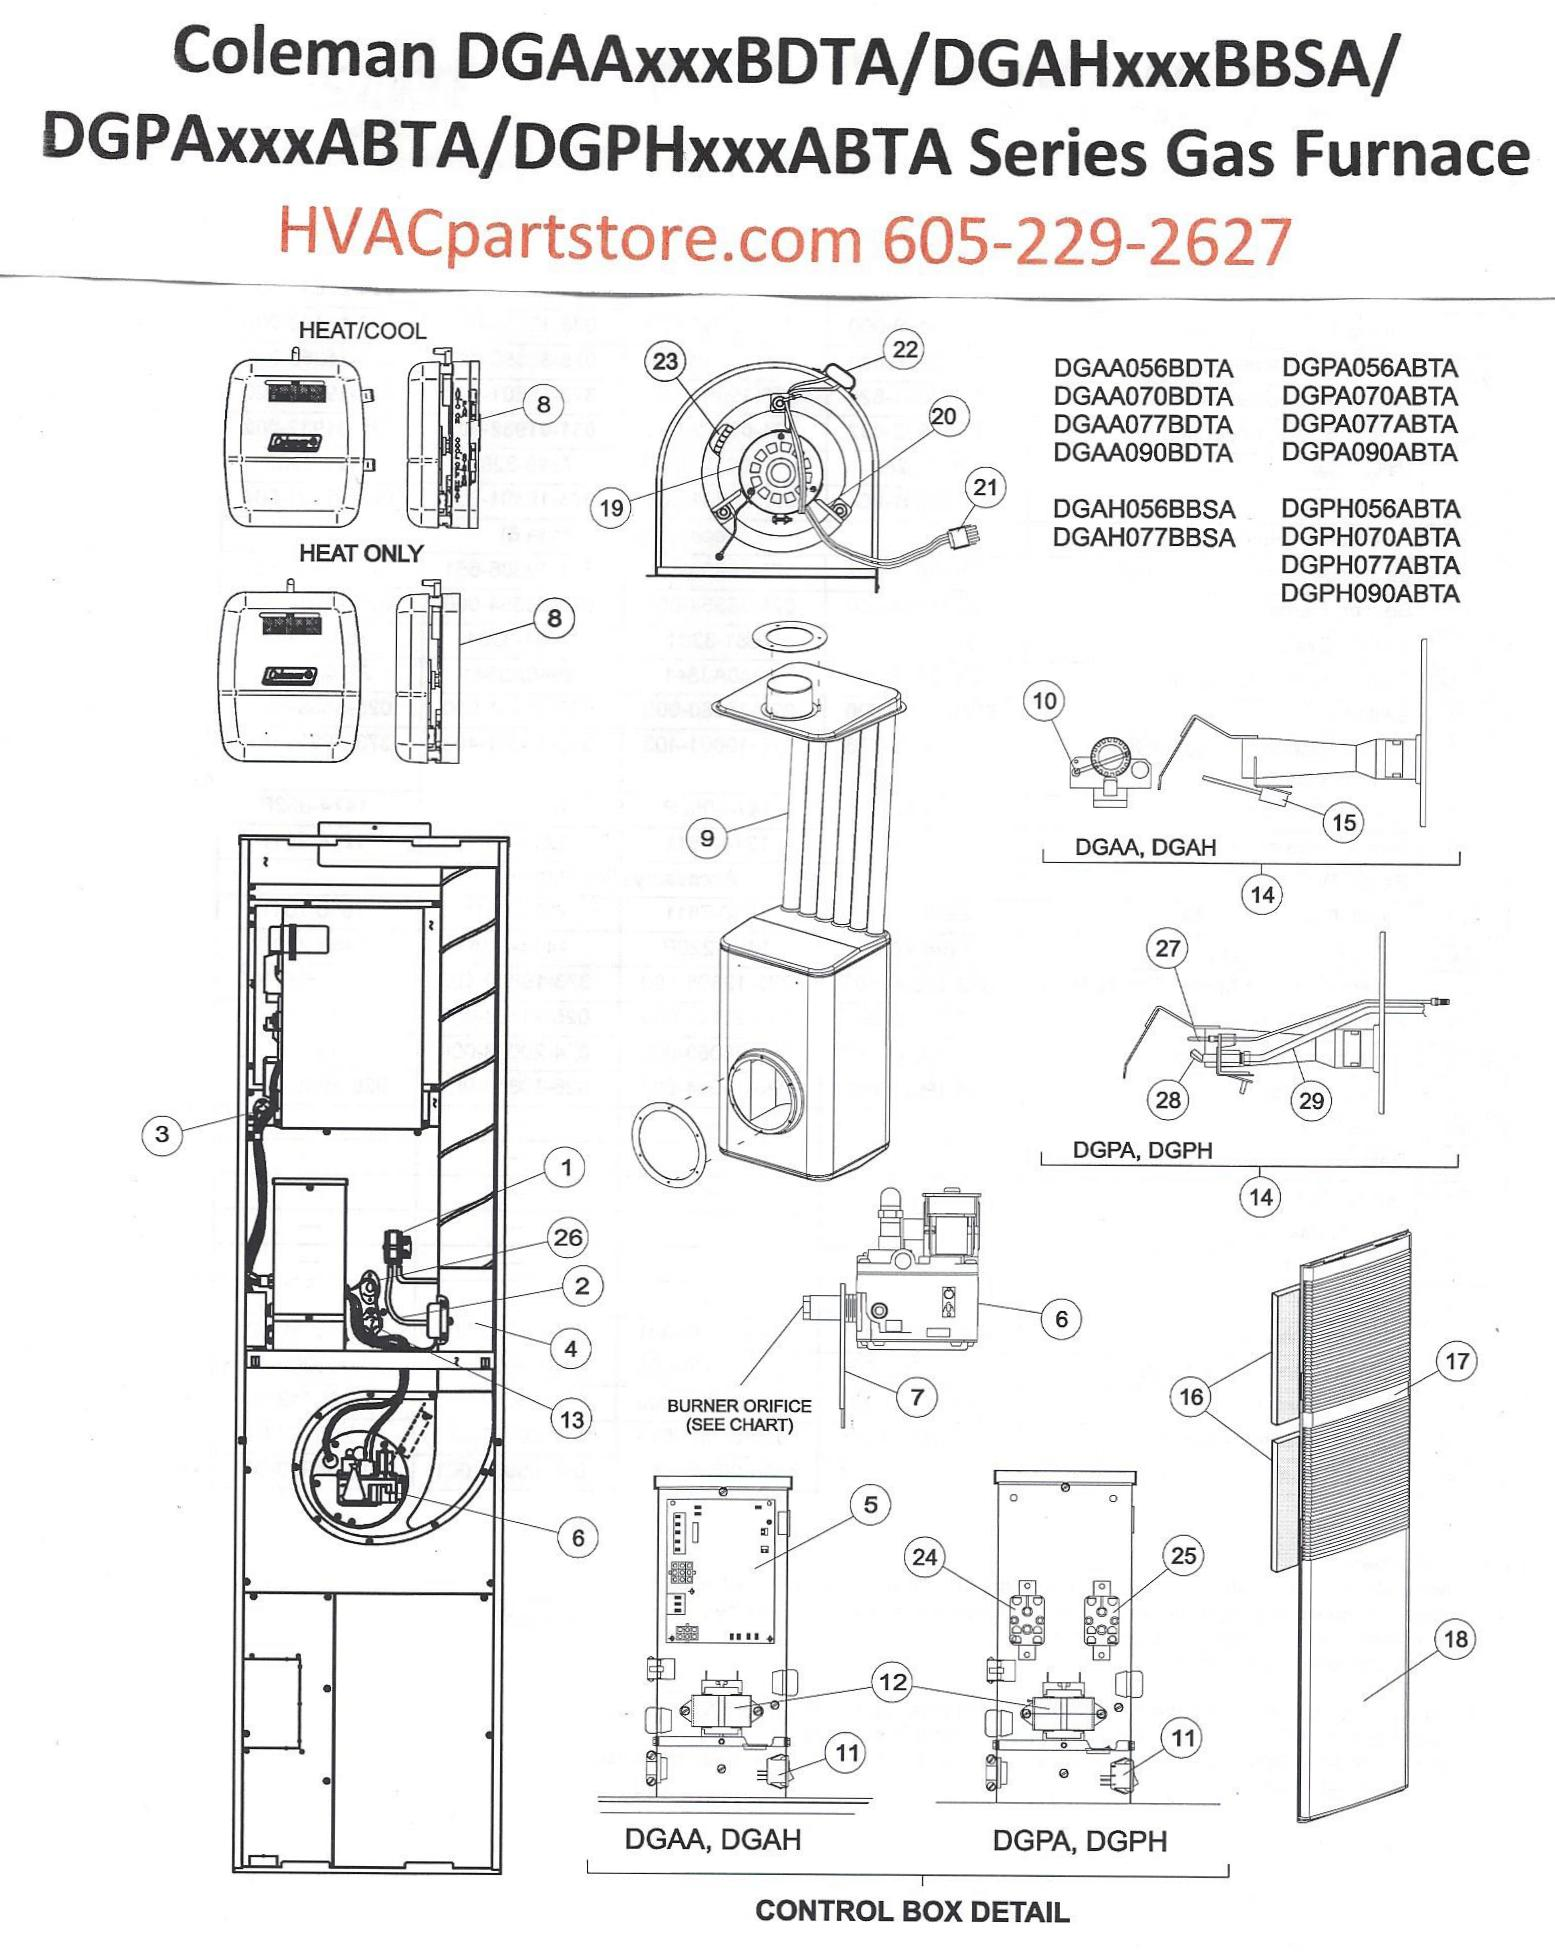 Click here to view a manual for the DGAH056BBSA which includes wiring  diagrams.